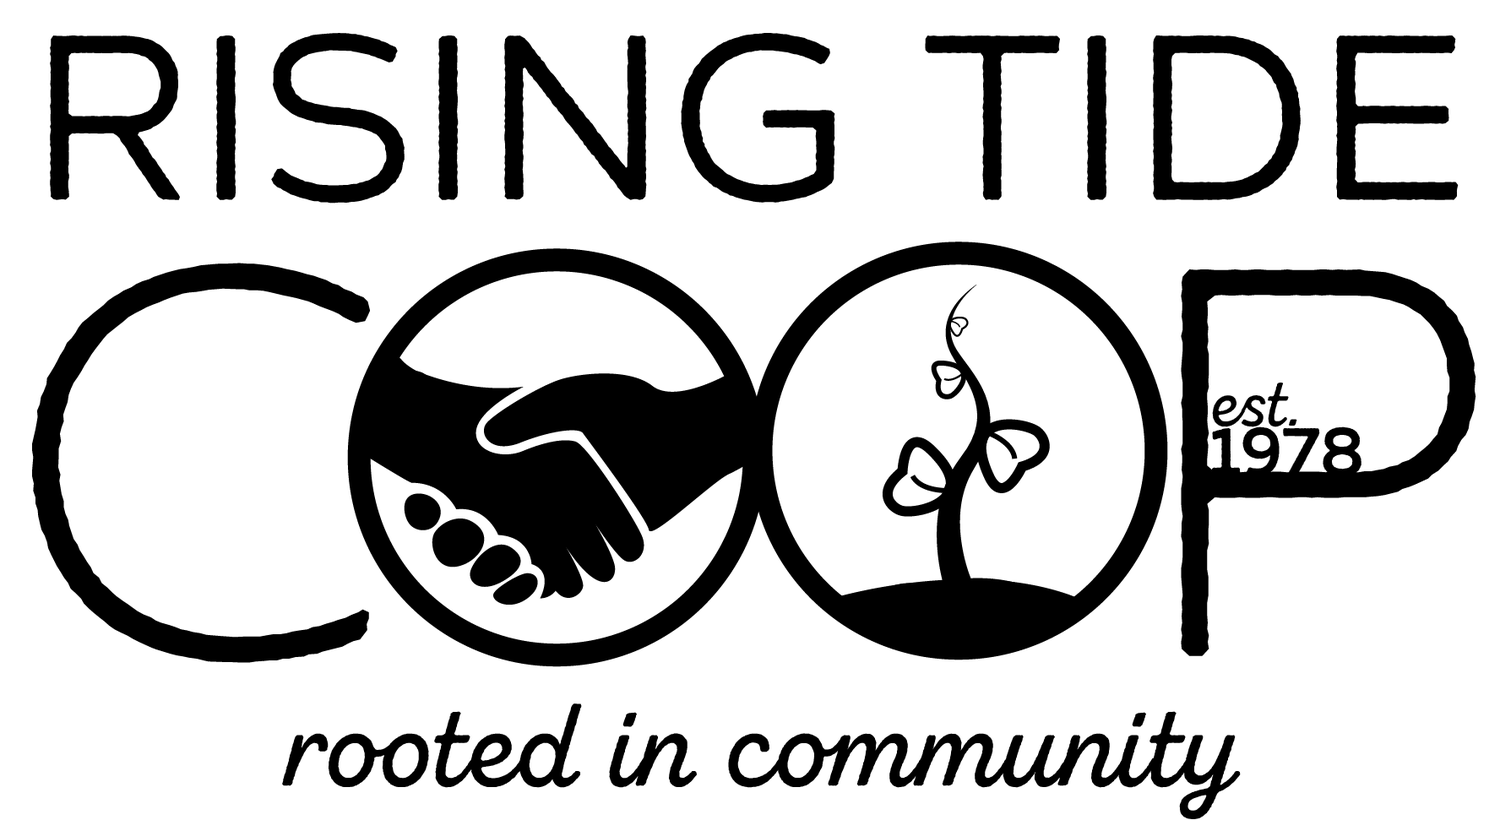 Rising Tide Co-op